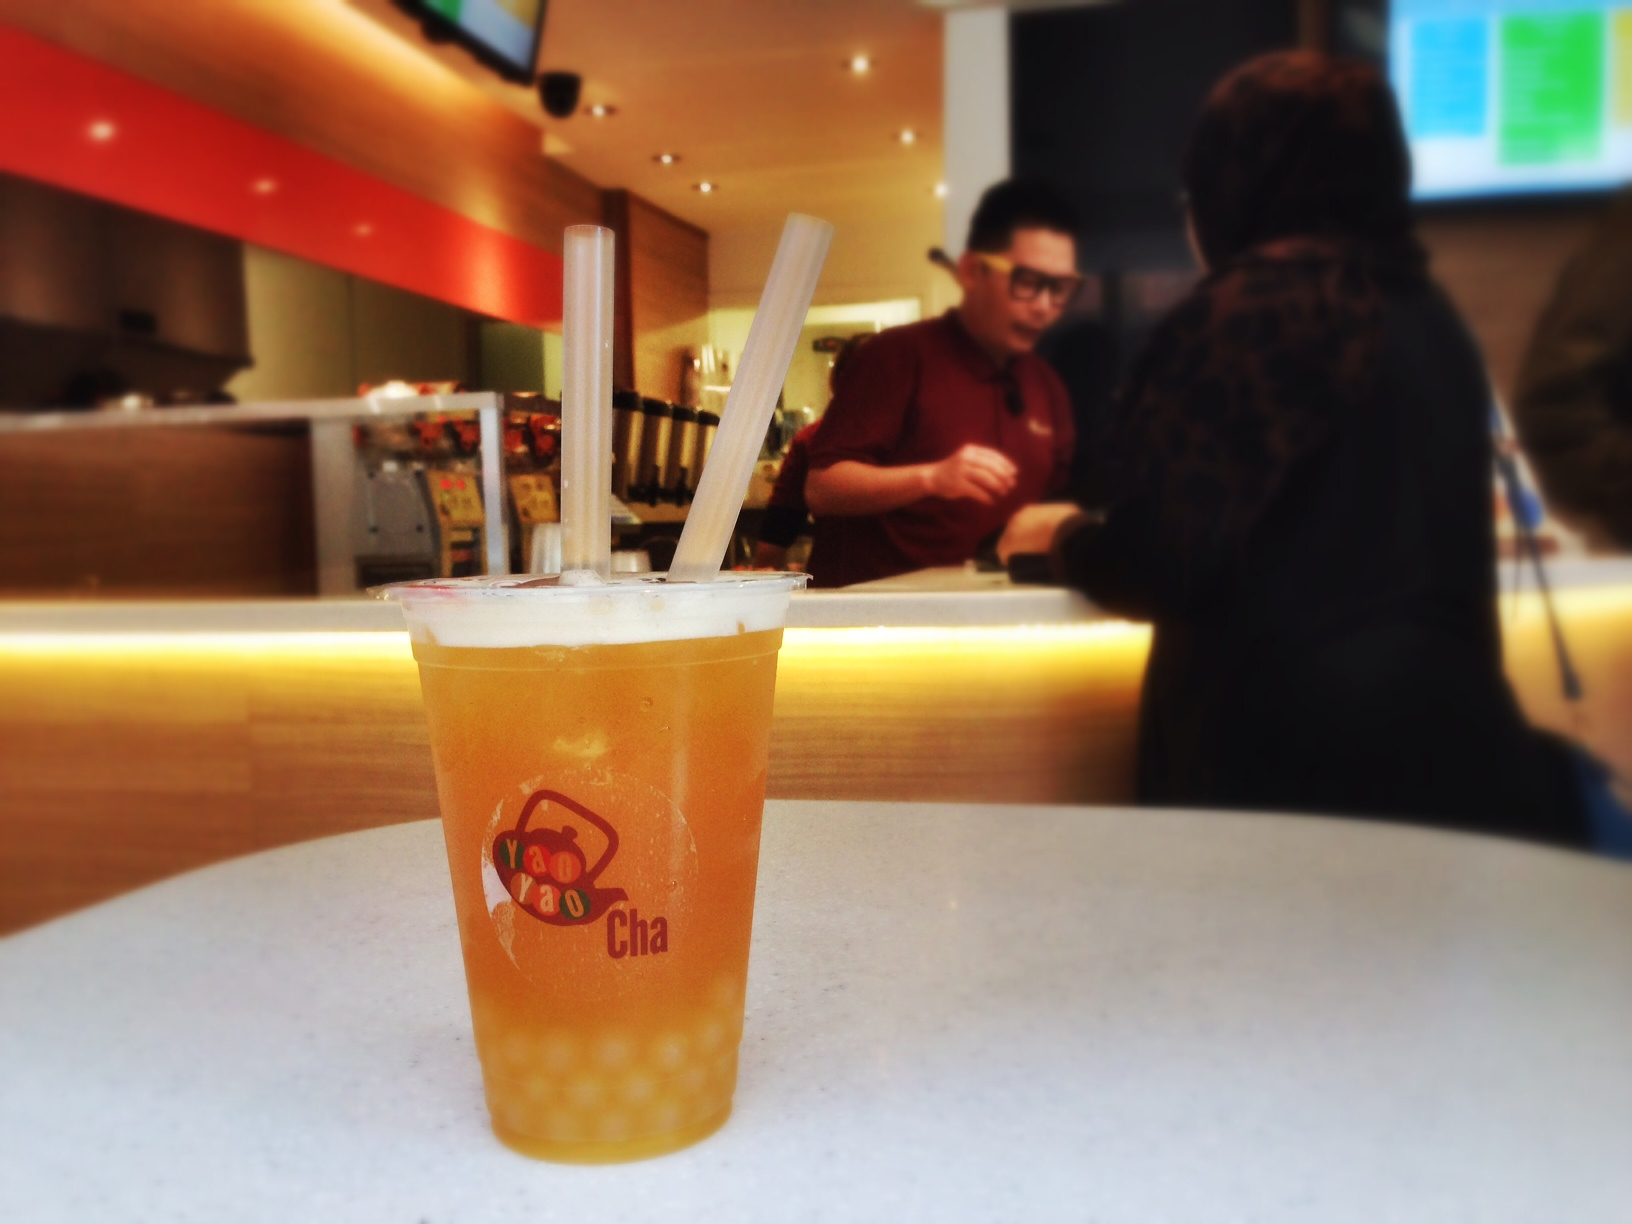 Yao Yao Cha Bubble Tea - passionfruit